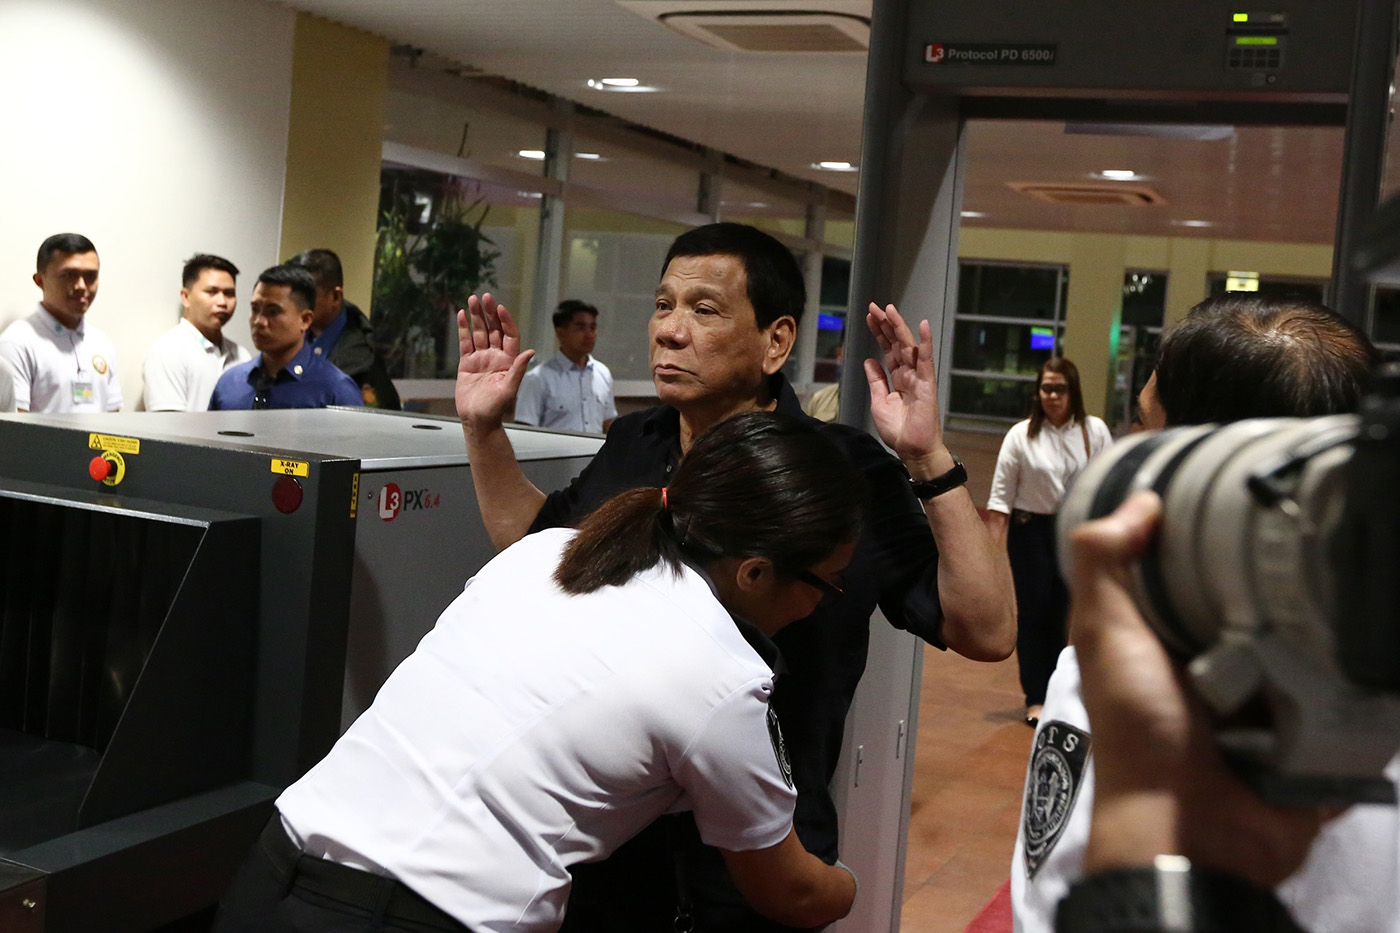 SECURITY CHECK. President Rodrigo Duterte submits himself for security inspection upon his arrival at the Bohol-Panglao International Airport for its inauguration on November 27, 2018. Malacau00f1ang photo